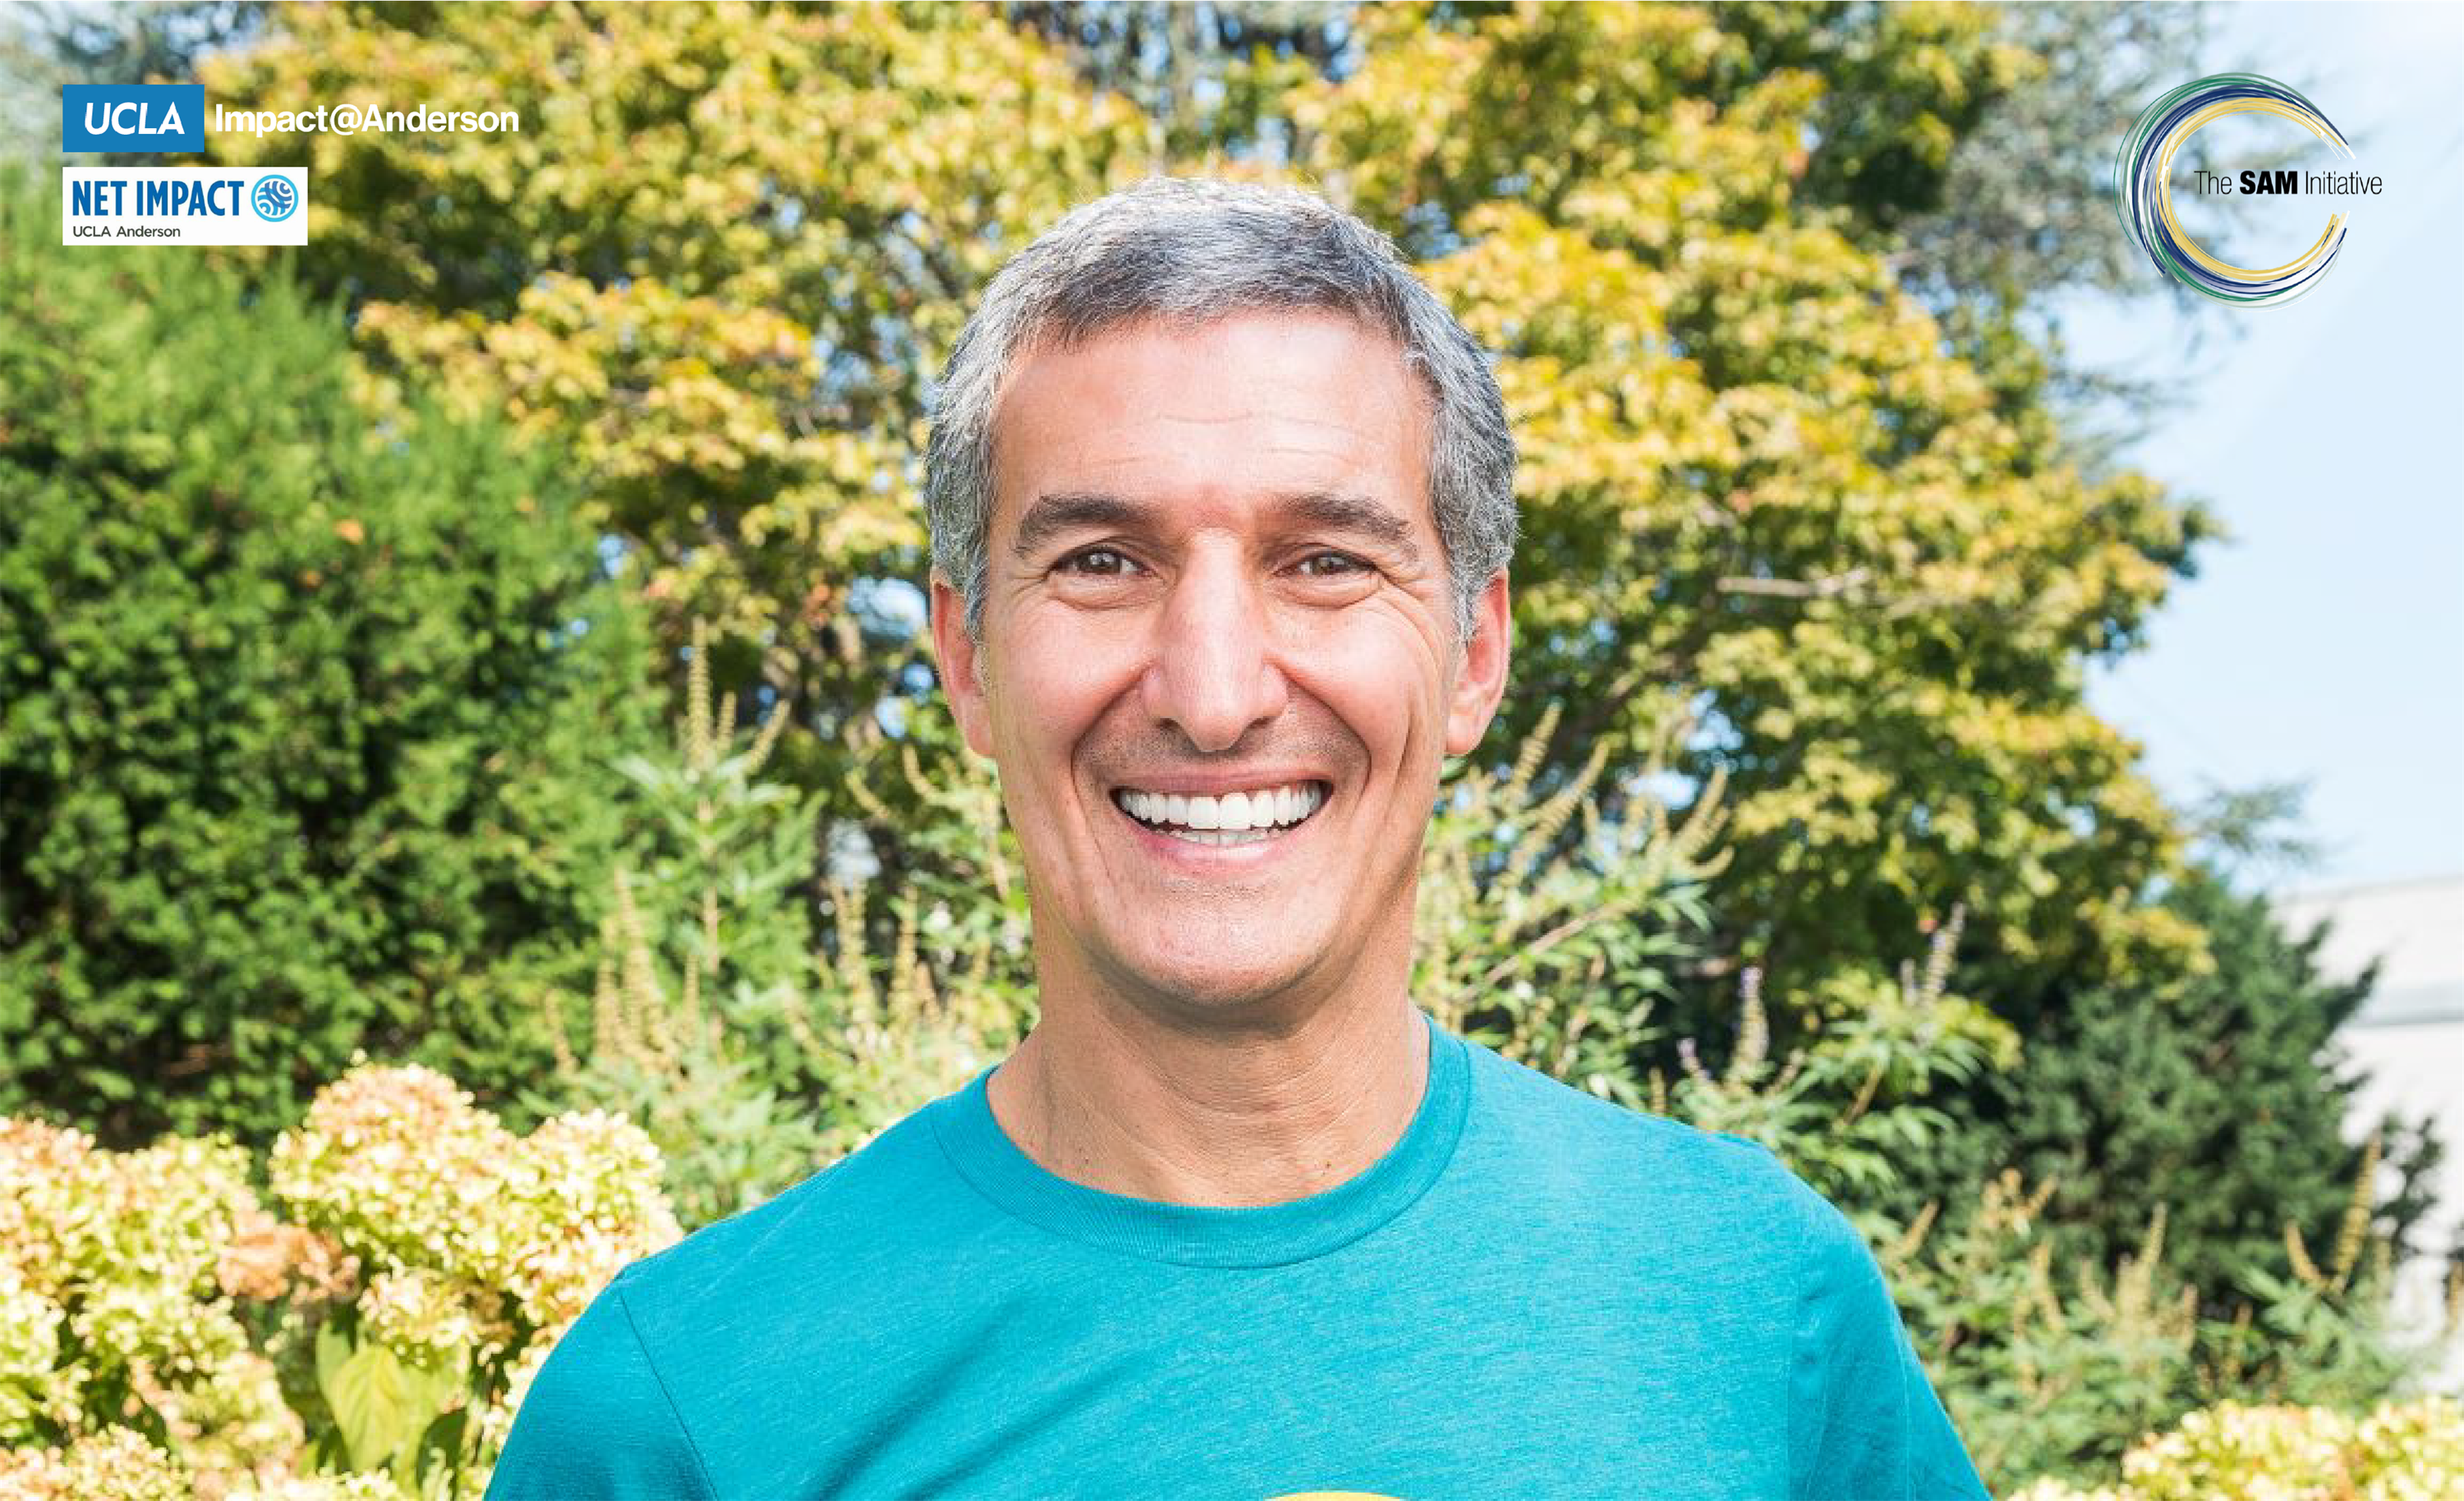 Virtual Impact Talk - Seth Goldman, Founder of Eat the Change™, Co-Founder and Executive Chair of Beyond Meat, Co-Founder and TeaEO Emeritus of Honest Tea